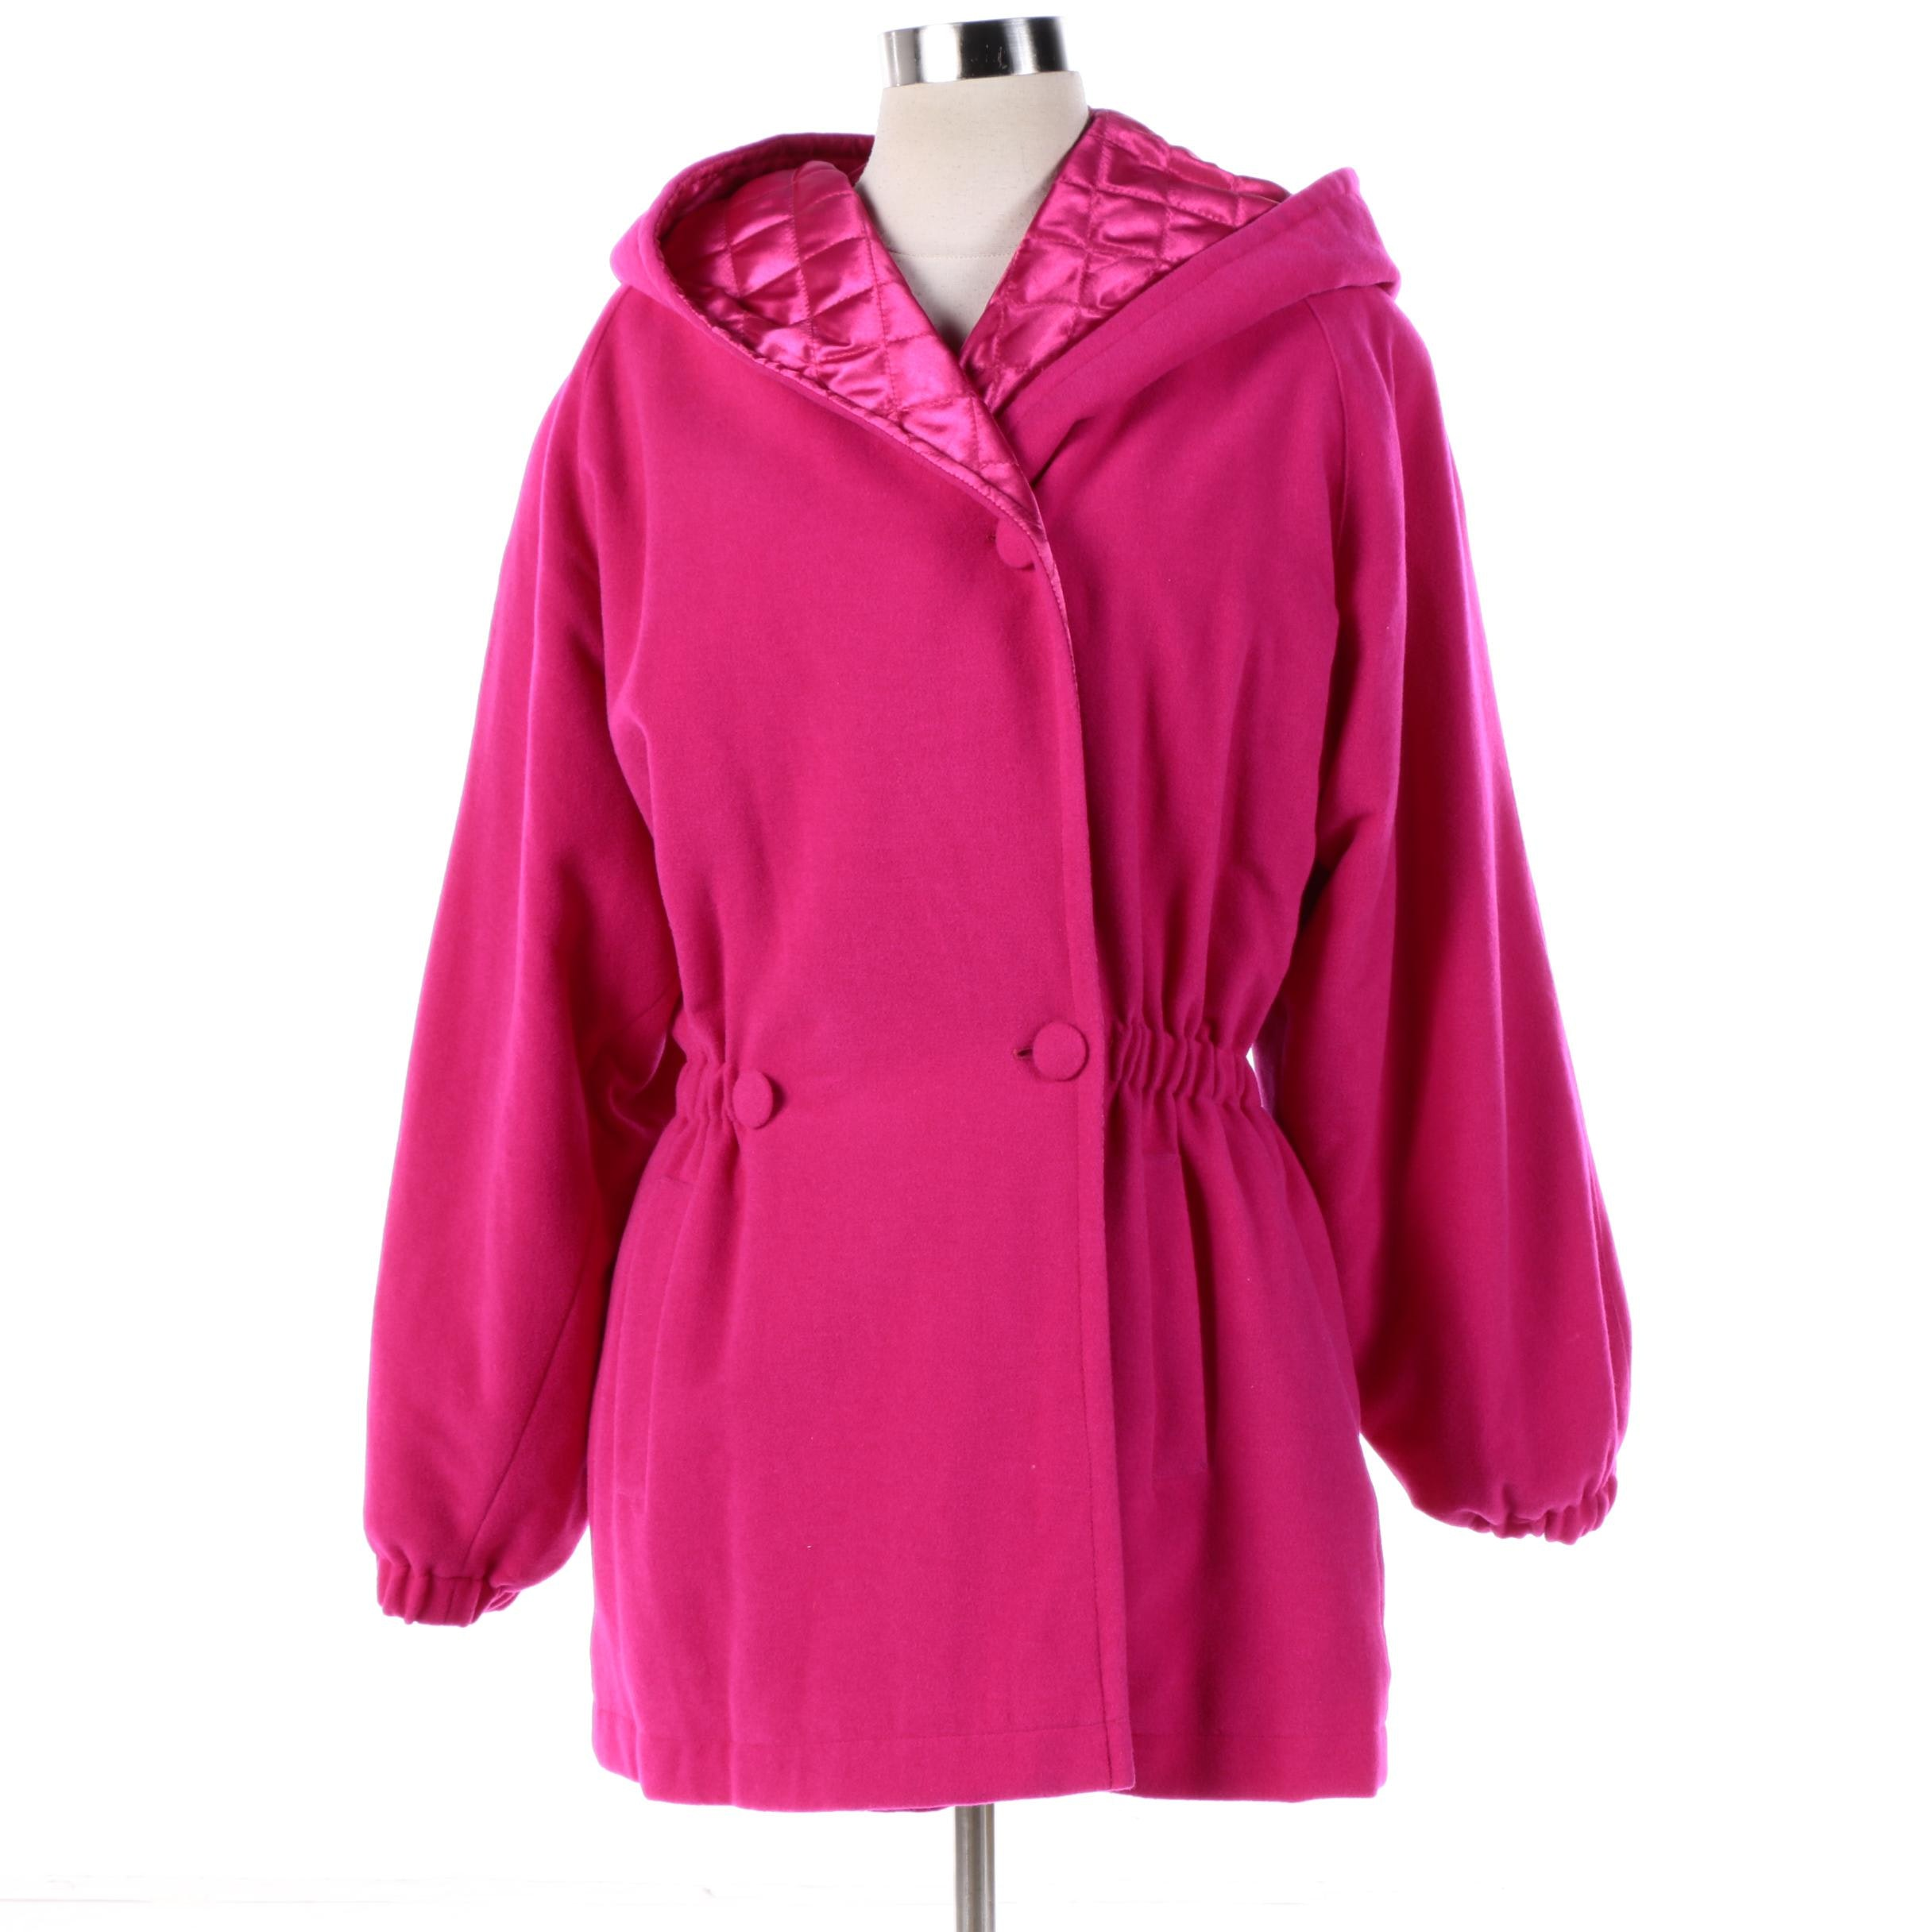 Women's Vintage Laurèl Pink Wool Blend Coat